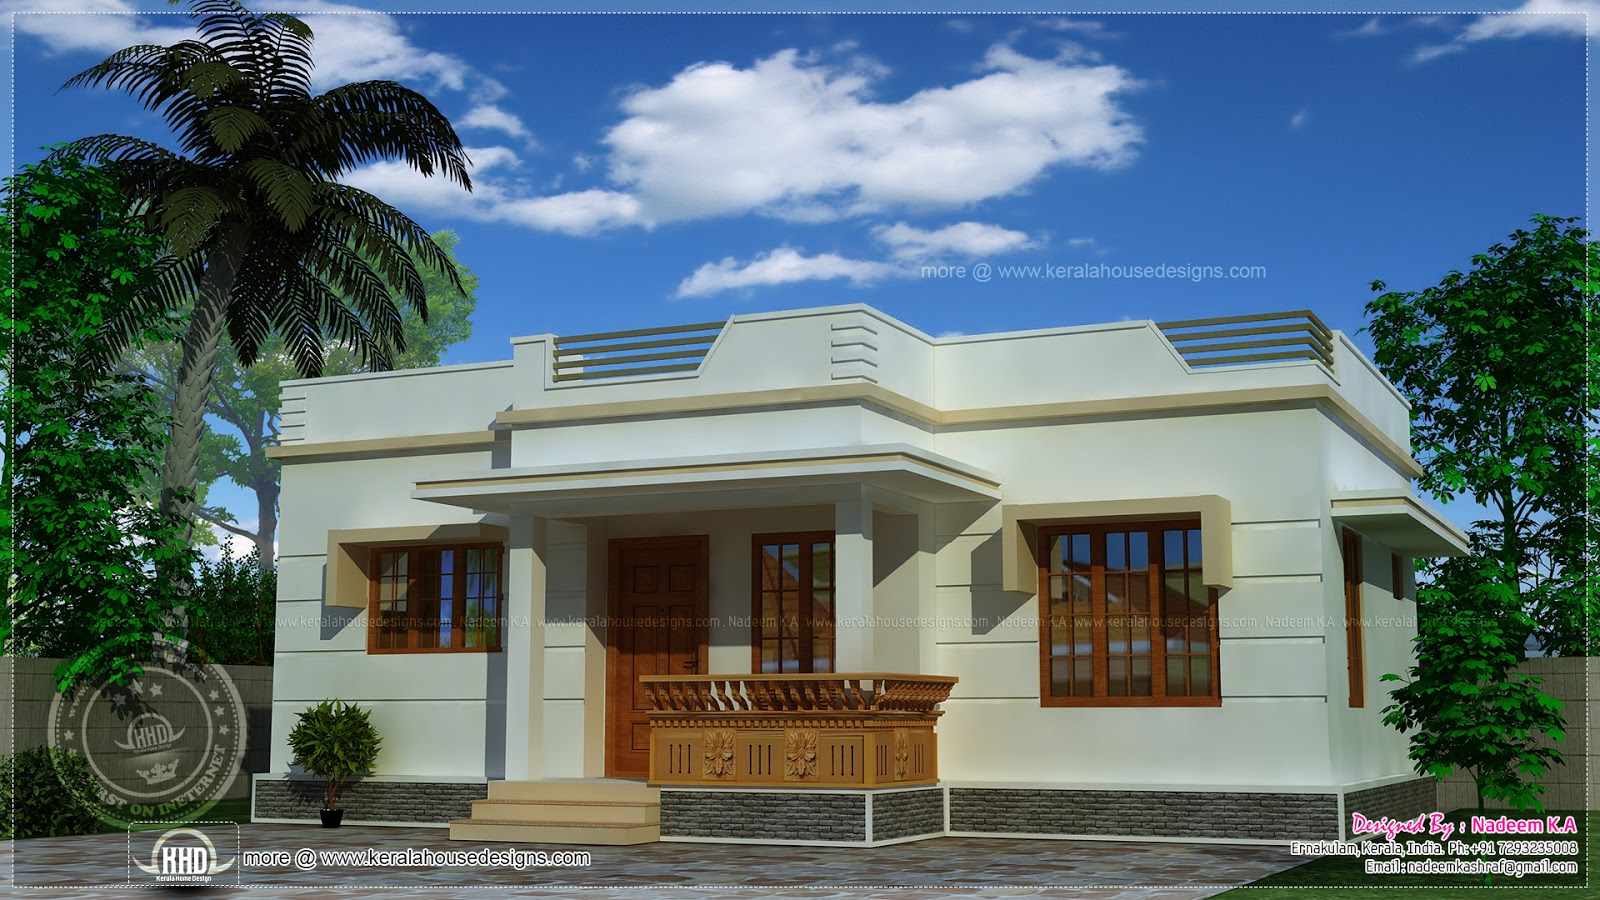 cheapest home plans in kerala » Architectural home plans | Victorian